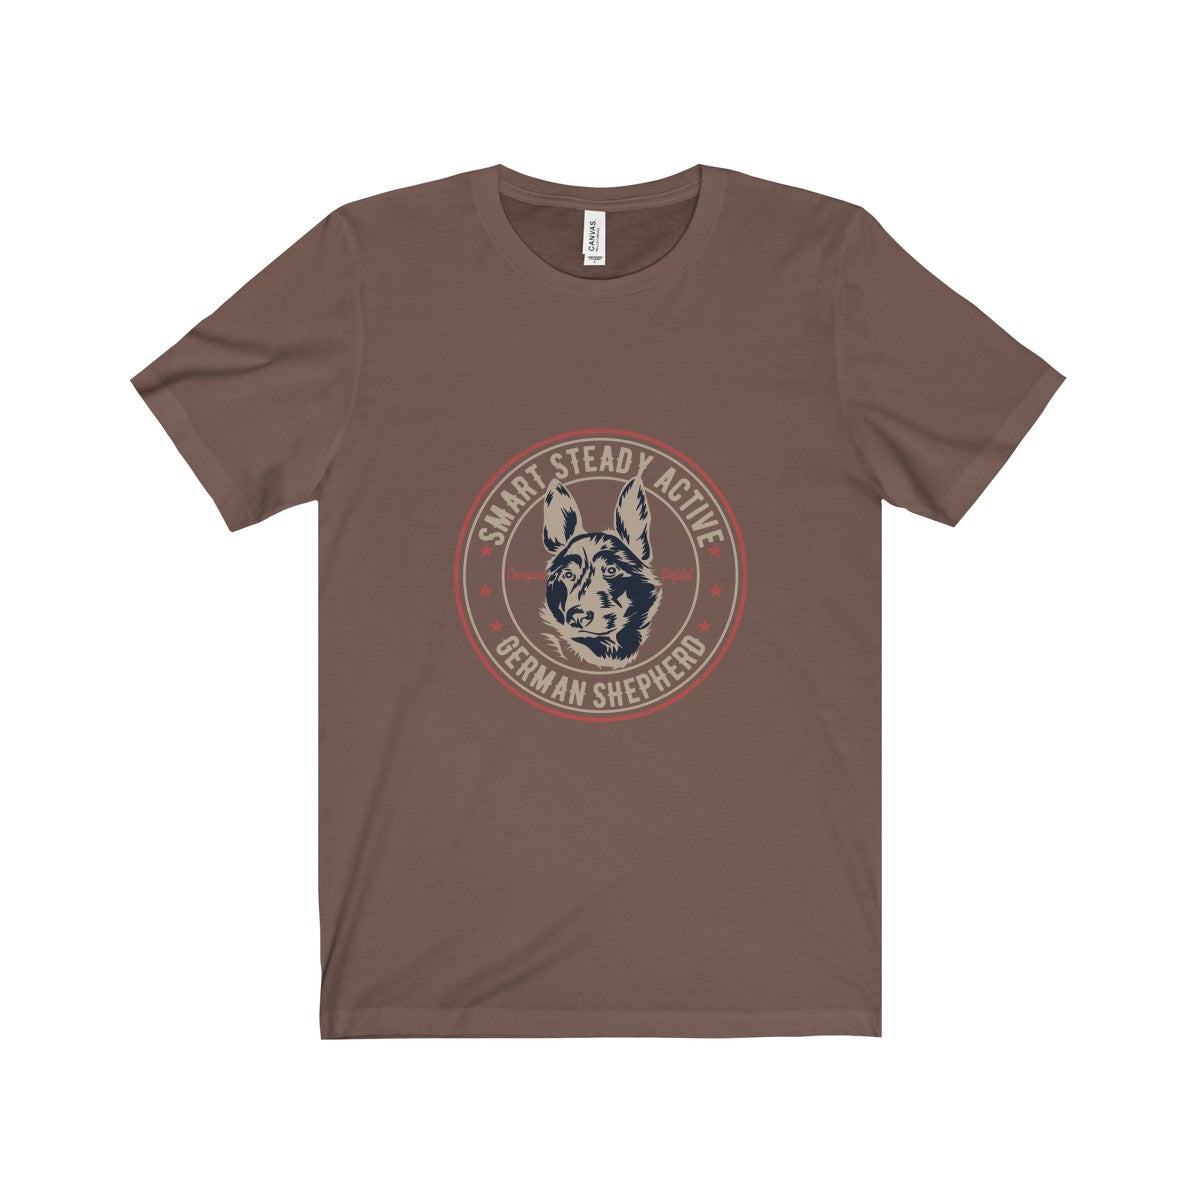 German Shepard Unisex Jersey Short Sleeve Tee